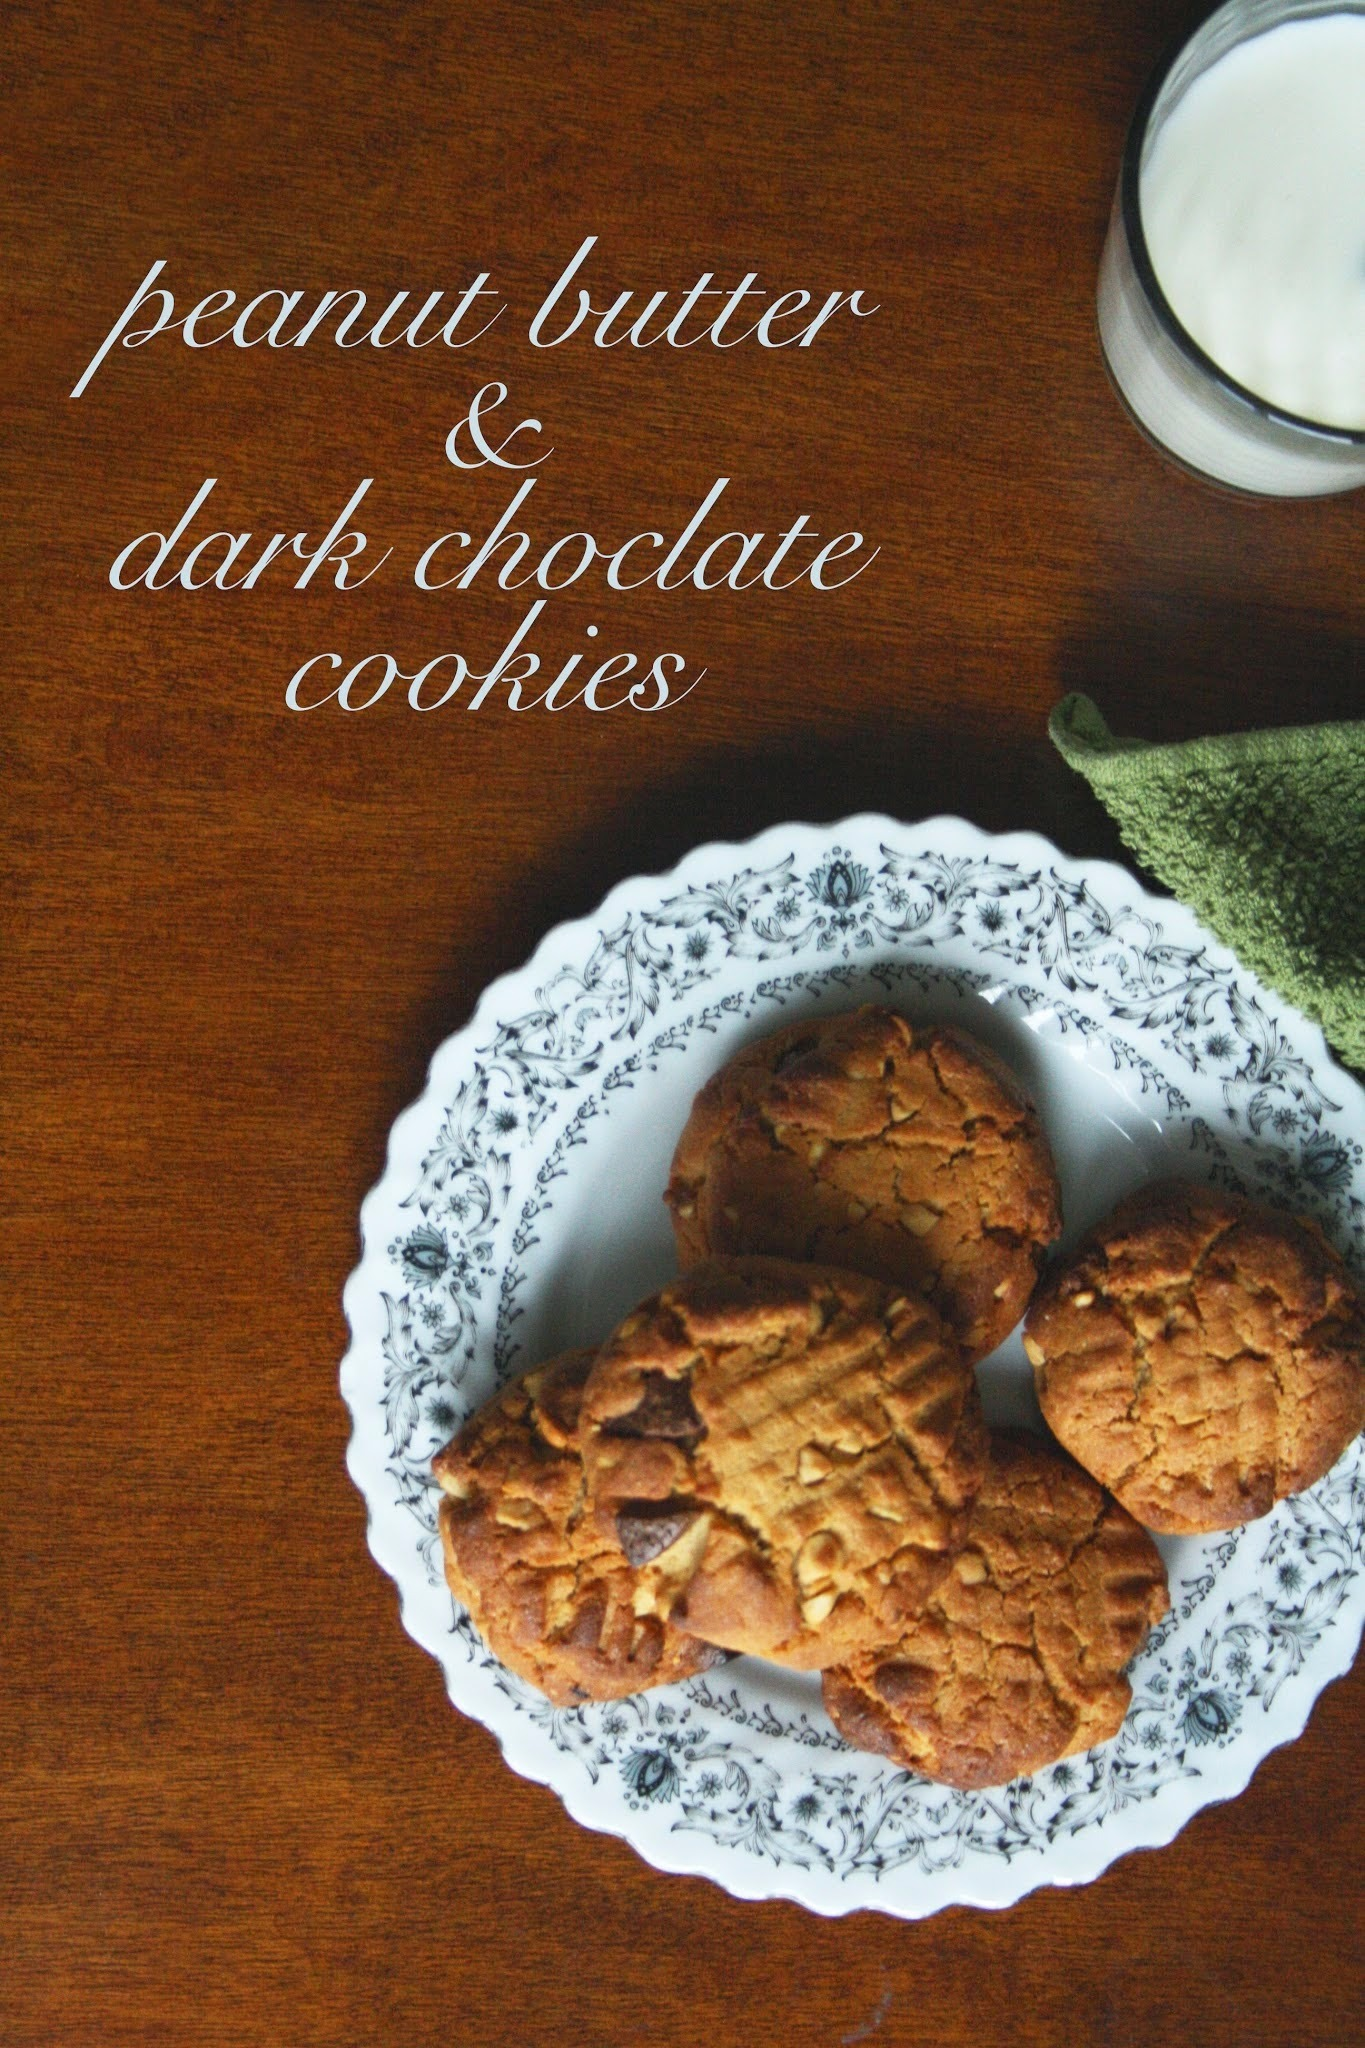 peanut butter & dark chocolate cookies.